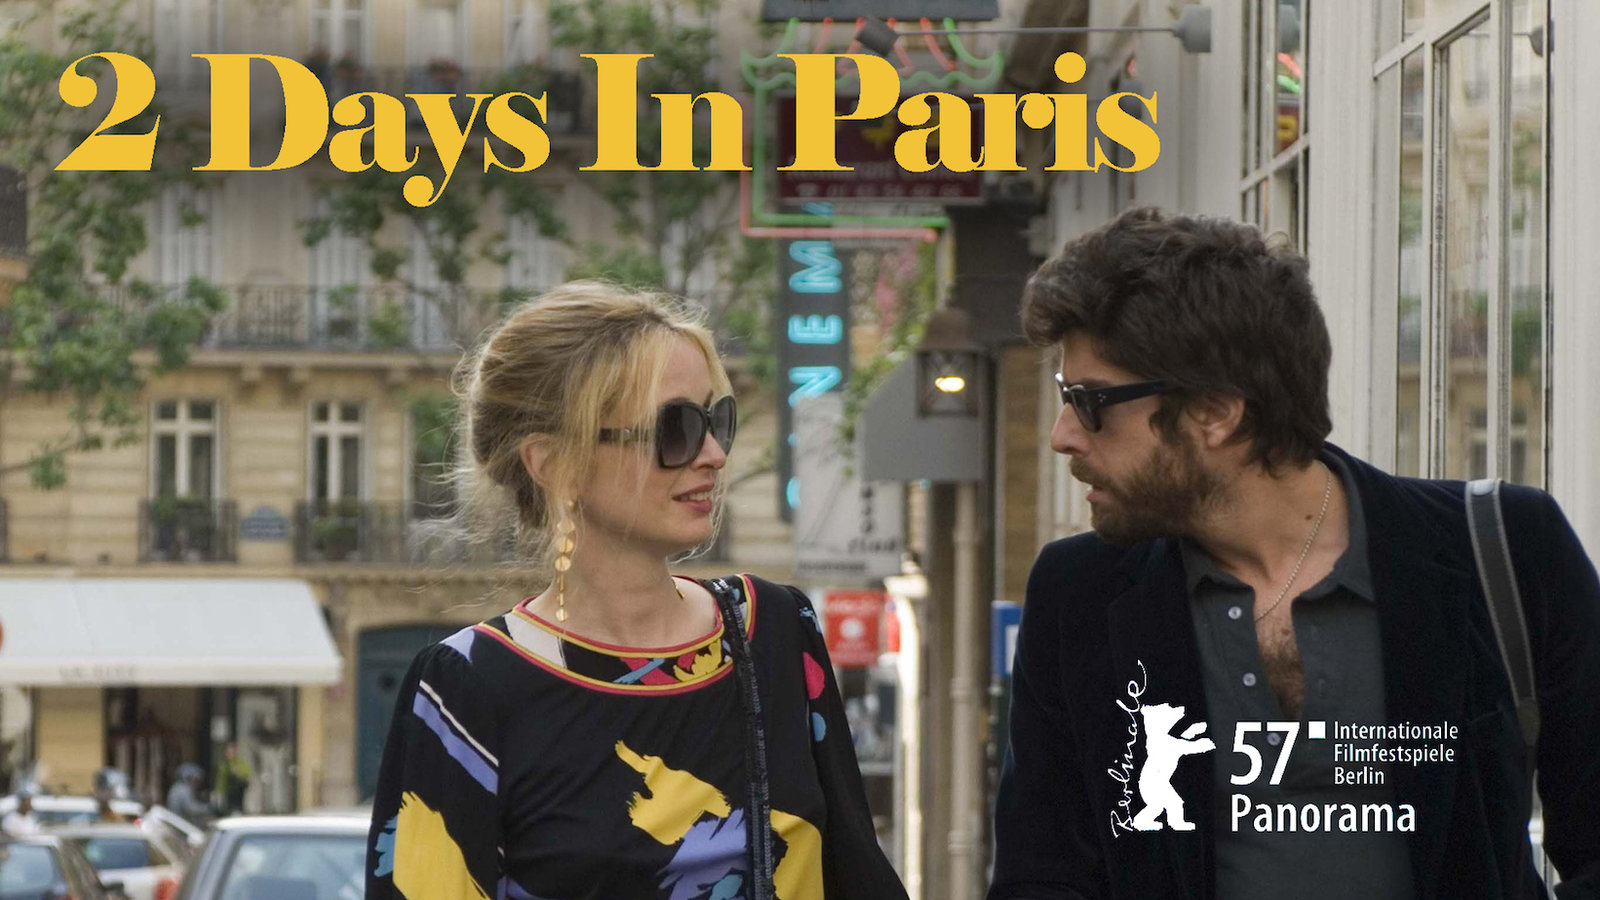 2 Days in Paris